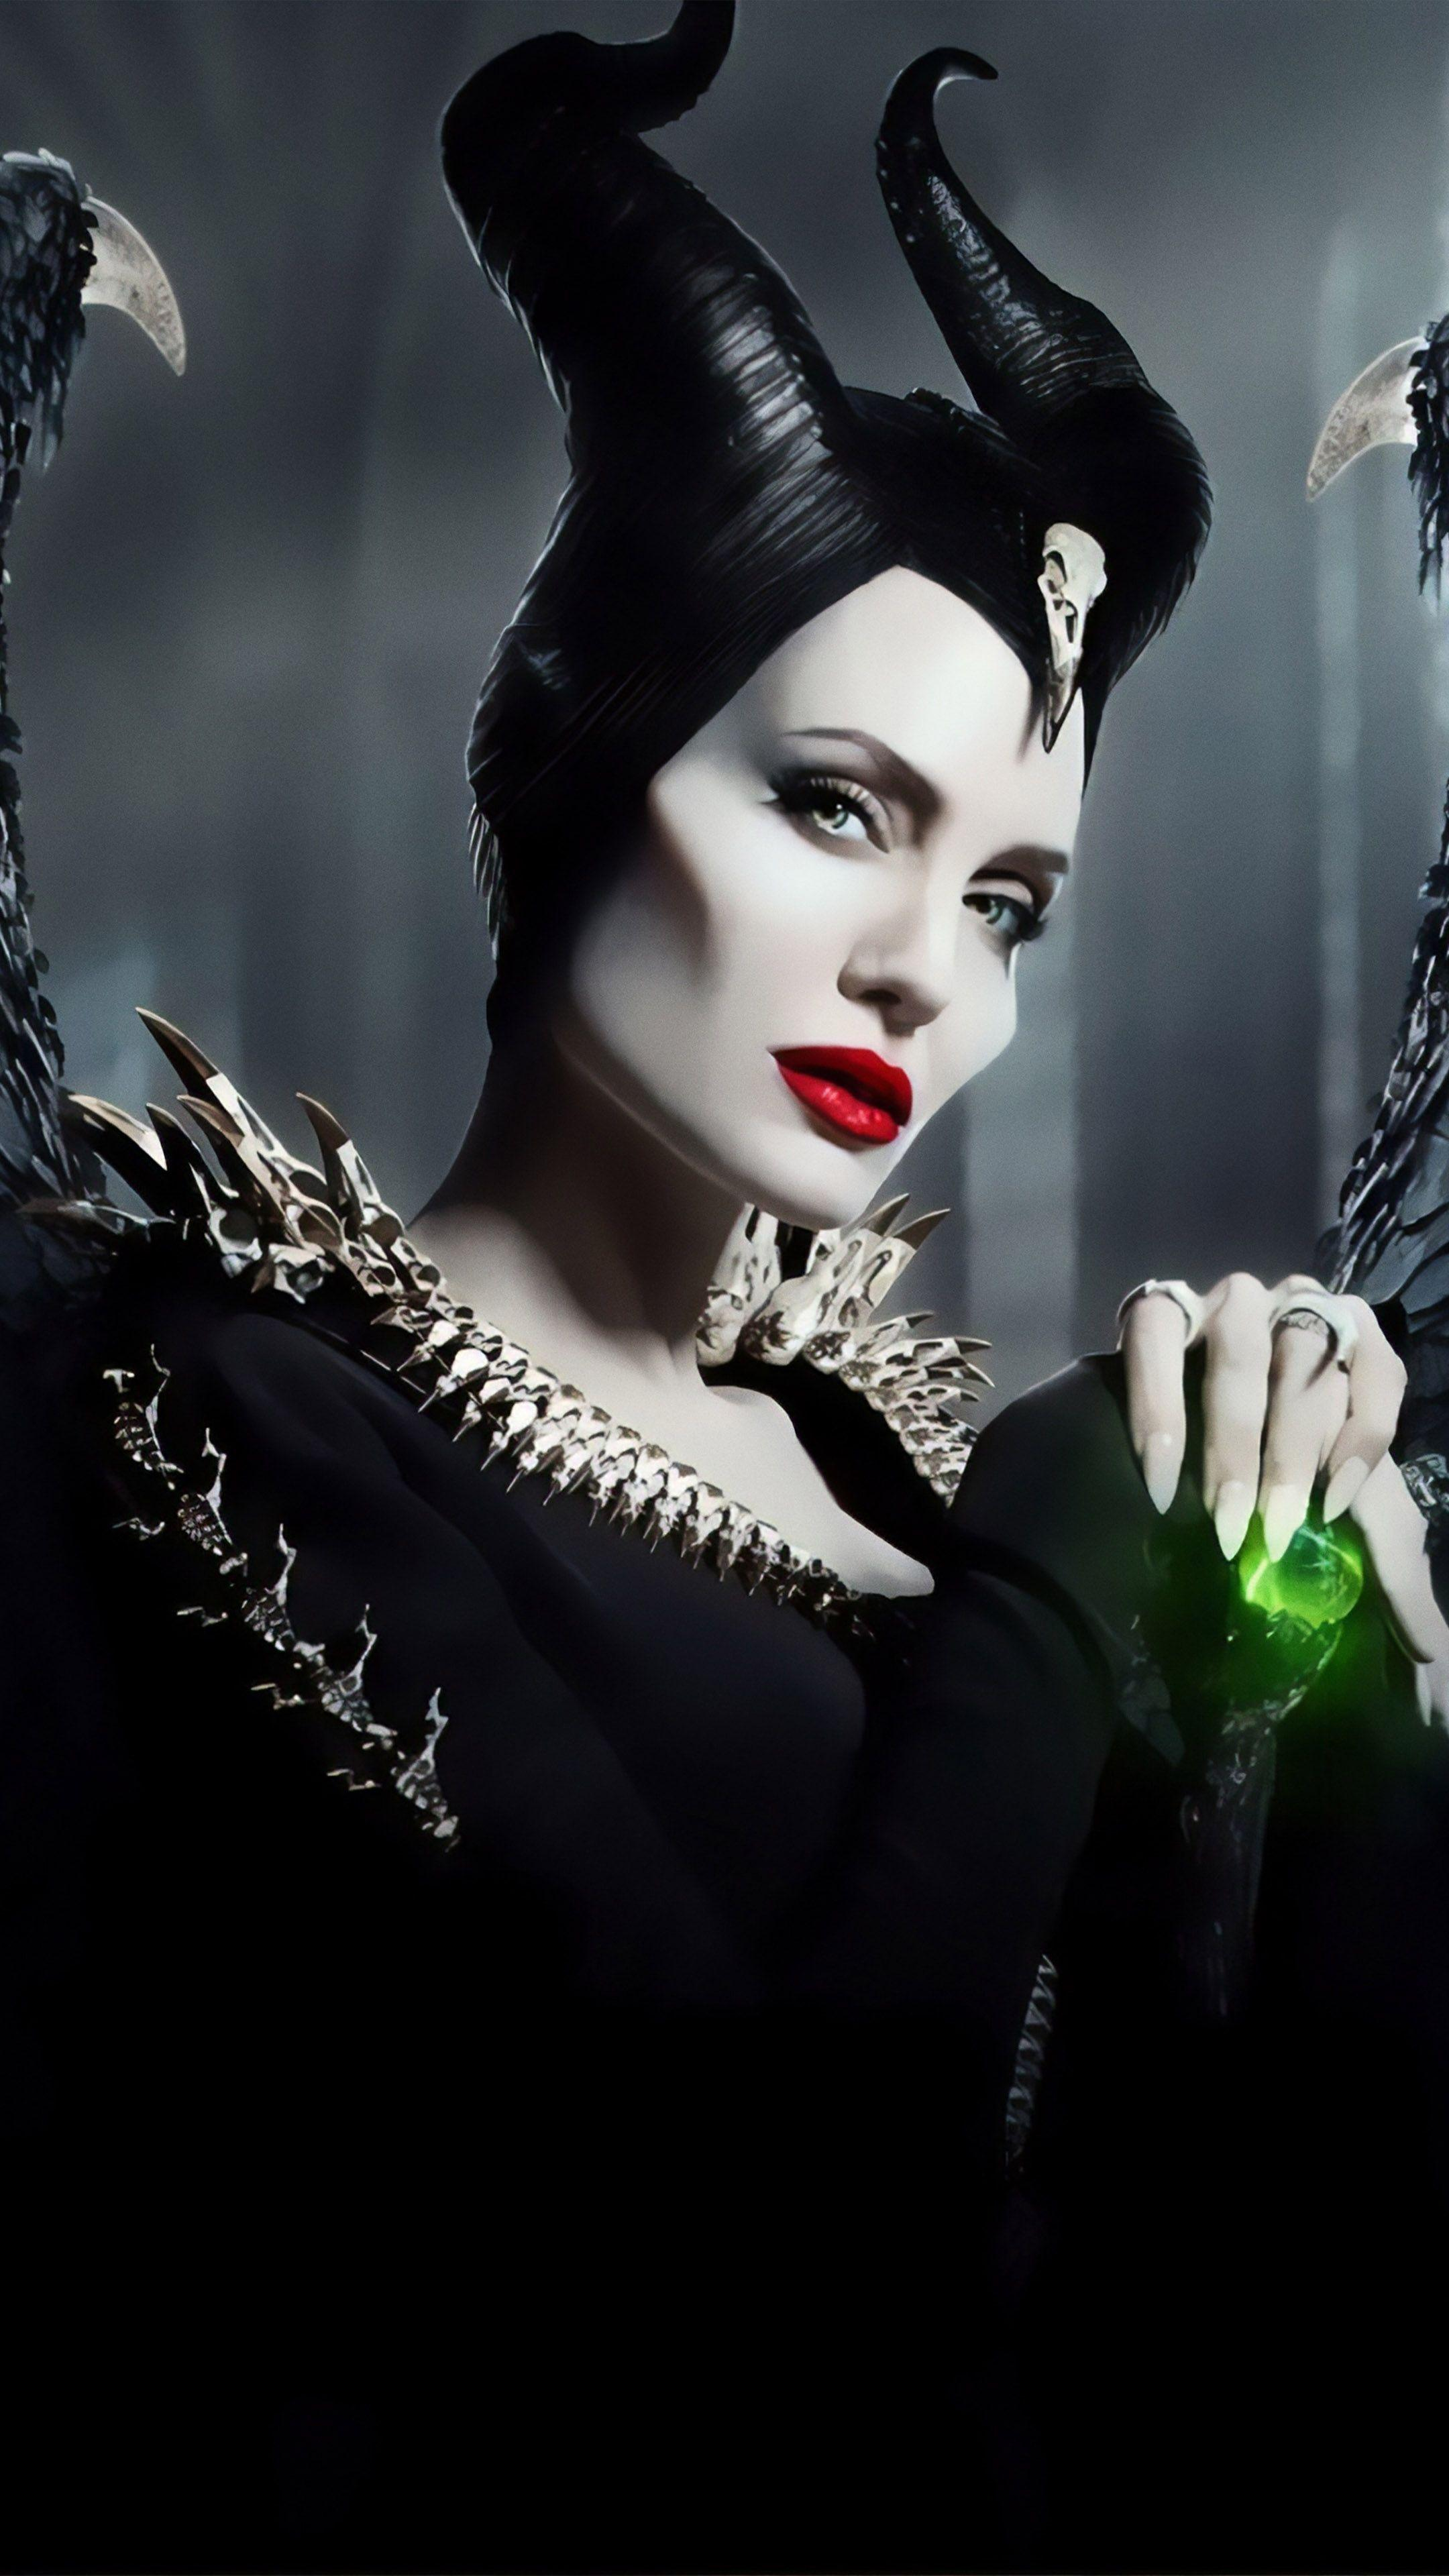 Maleficent Mistress Of Evil Wallpapers Wallpaper Cave